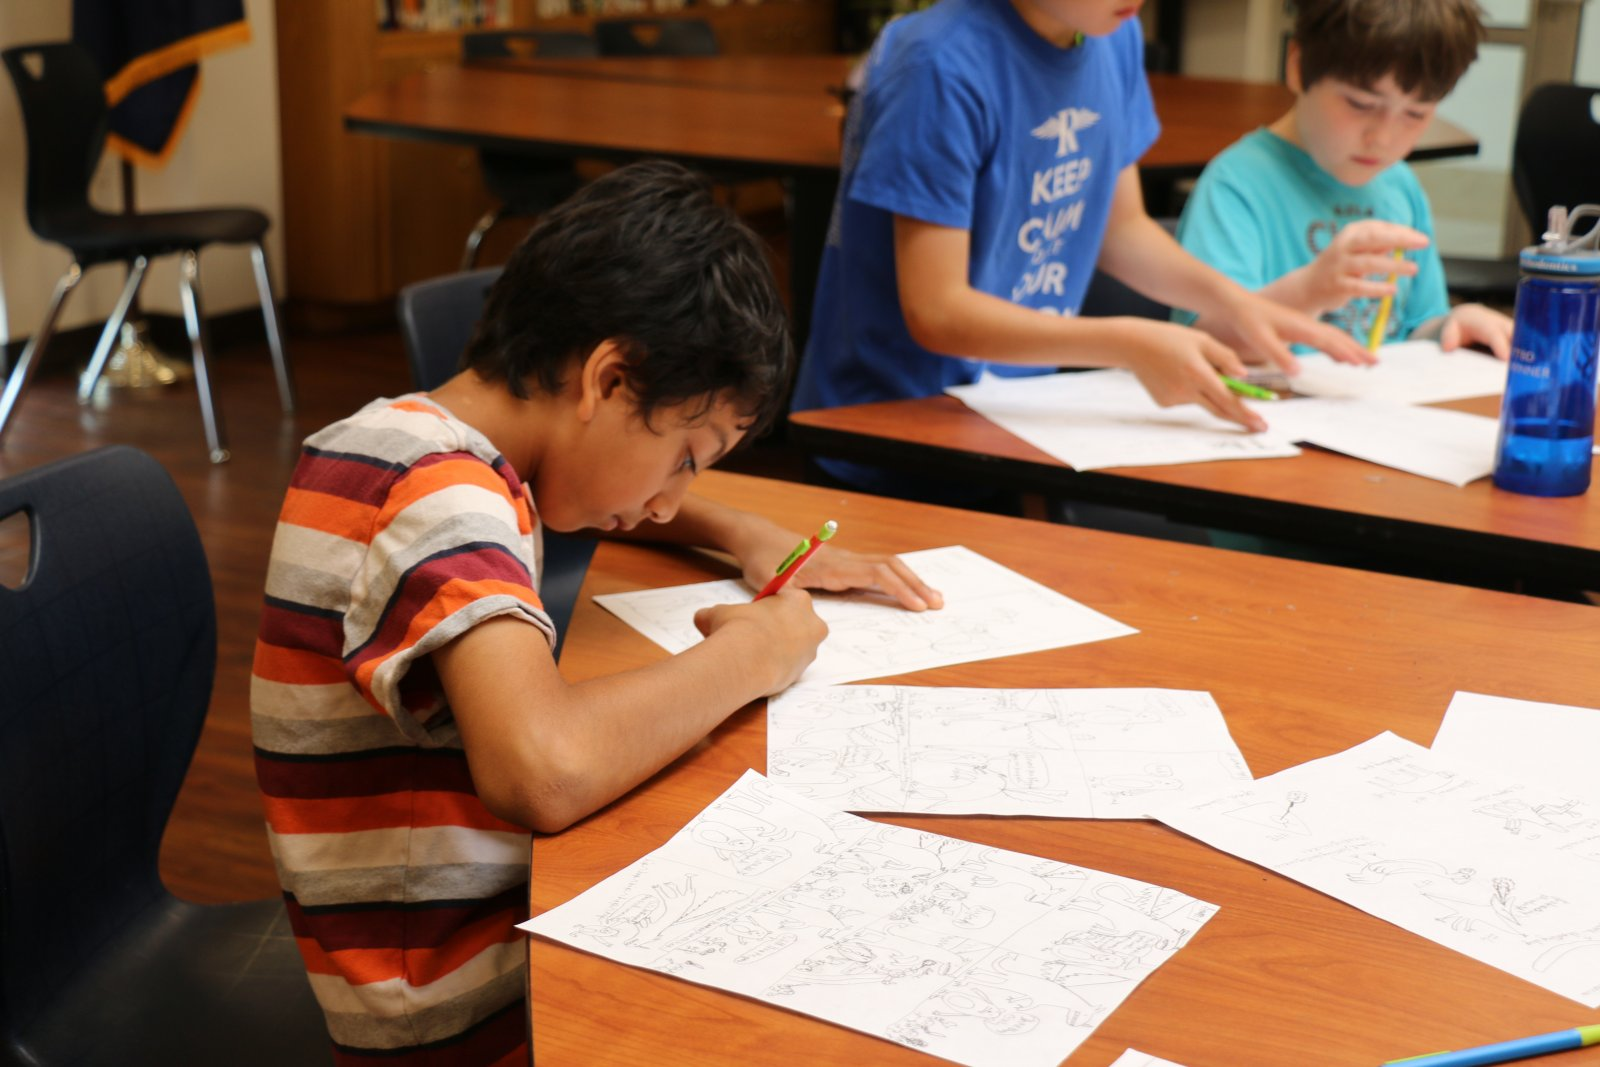 Saturday Academy student drawing a comic in a graphic novel class